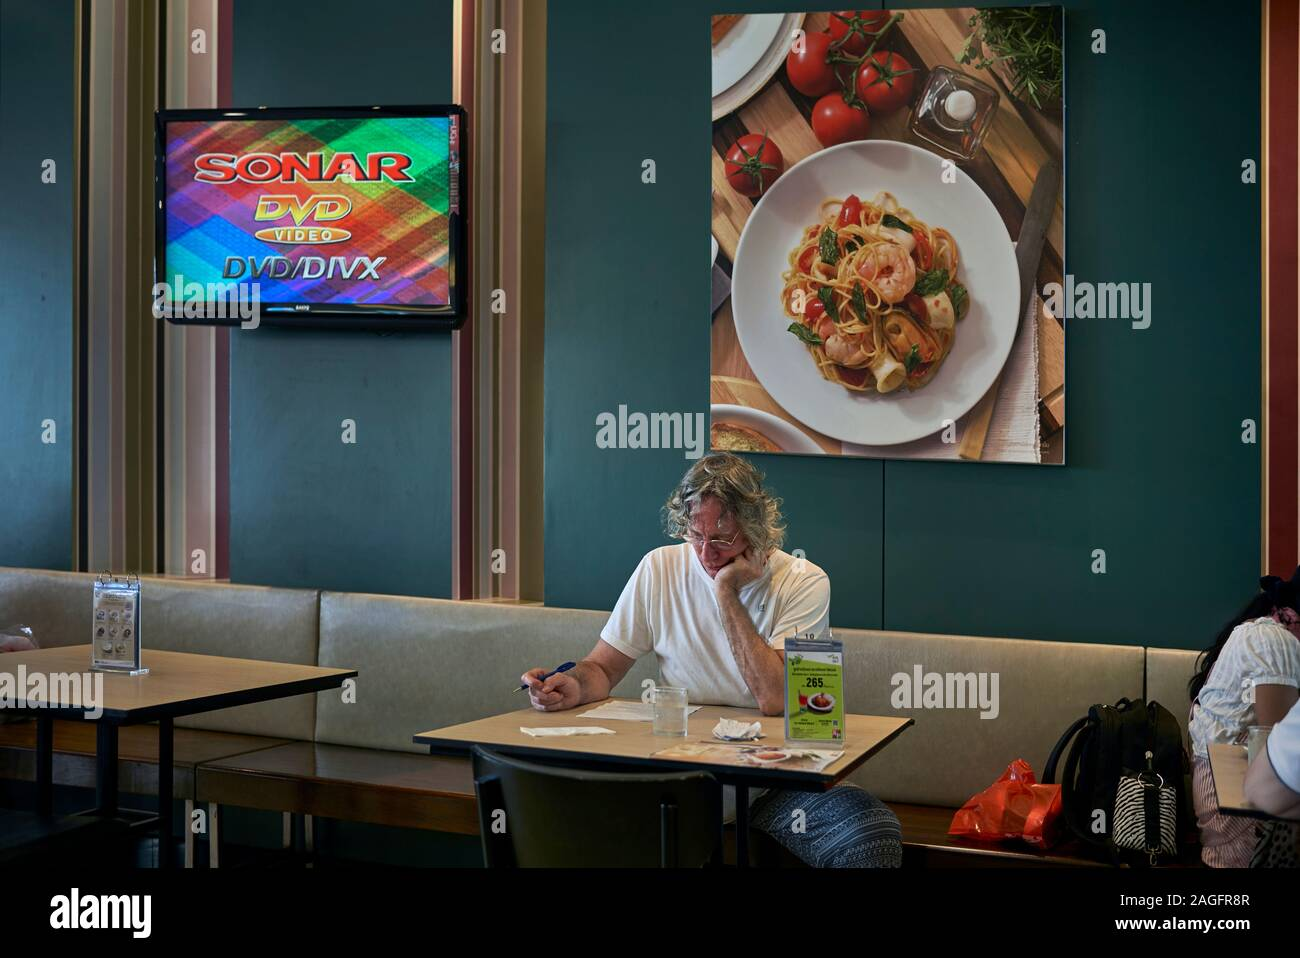 Man Alone Studying Paperwork In A Restaurant Interior Against A Wall Backdrop Of Food Art Stock Photo Alamy